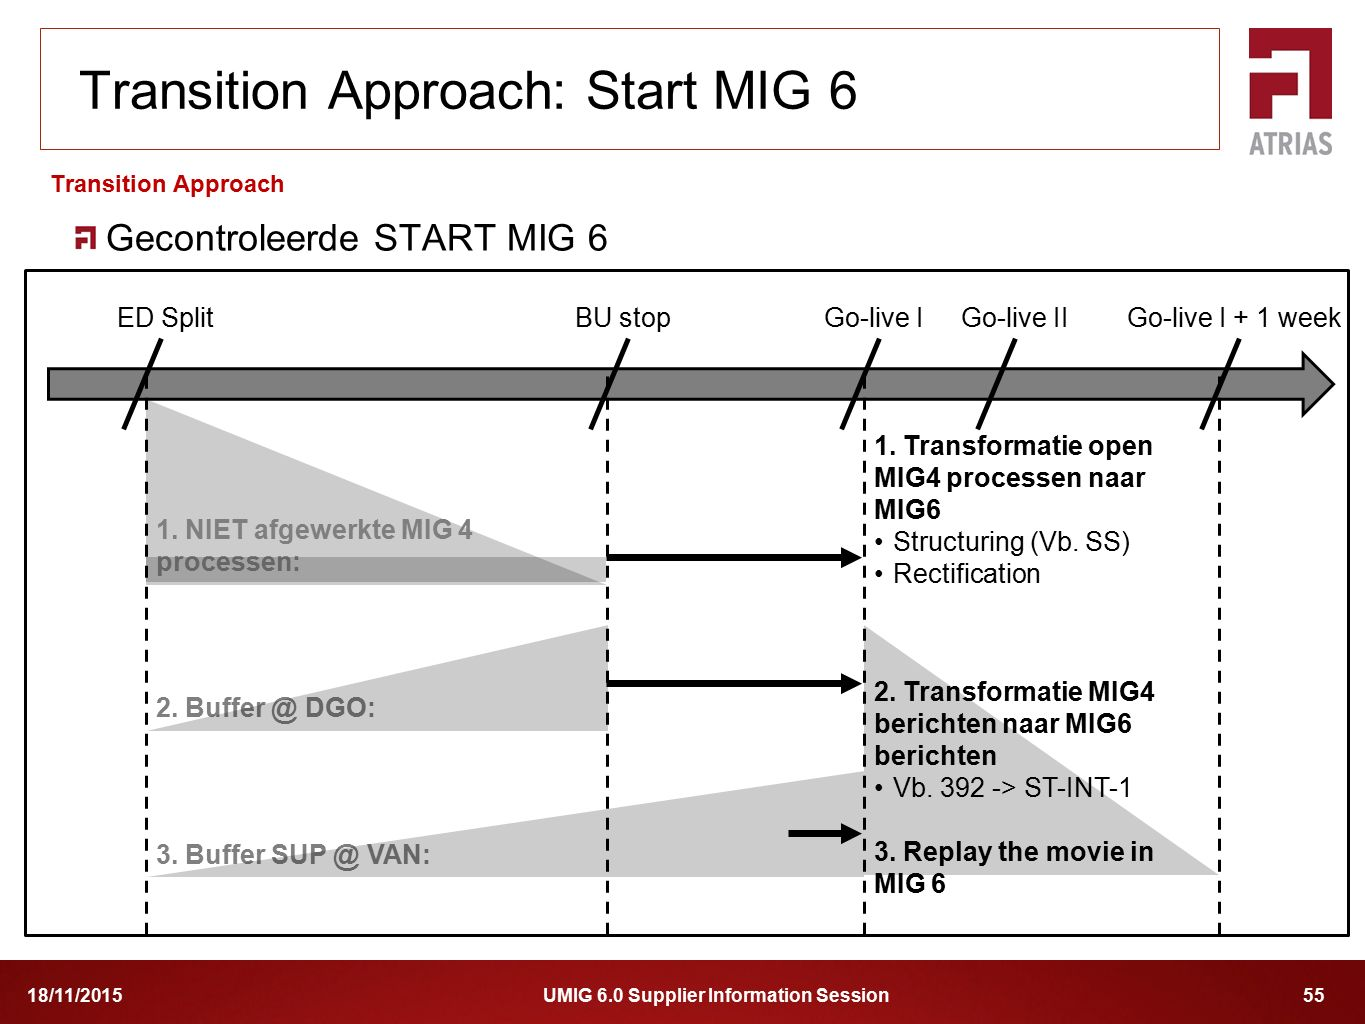 Transition Approach: Start MIG 6